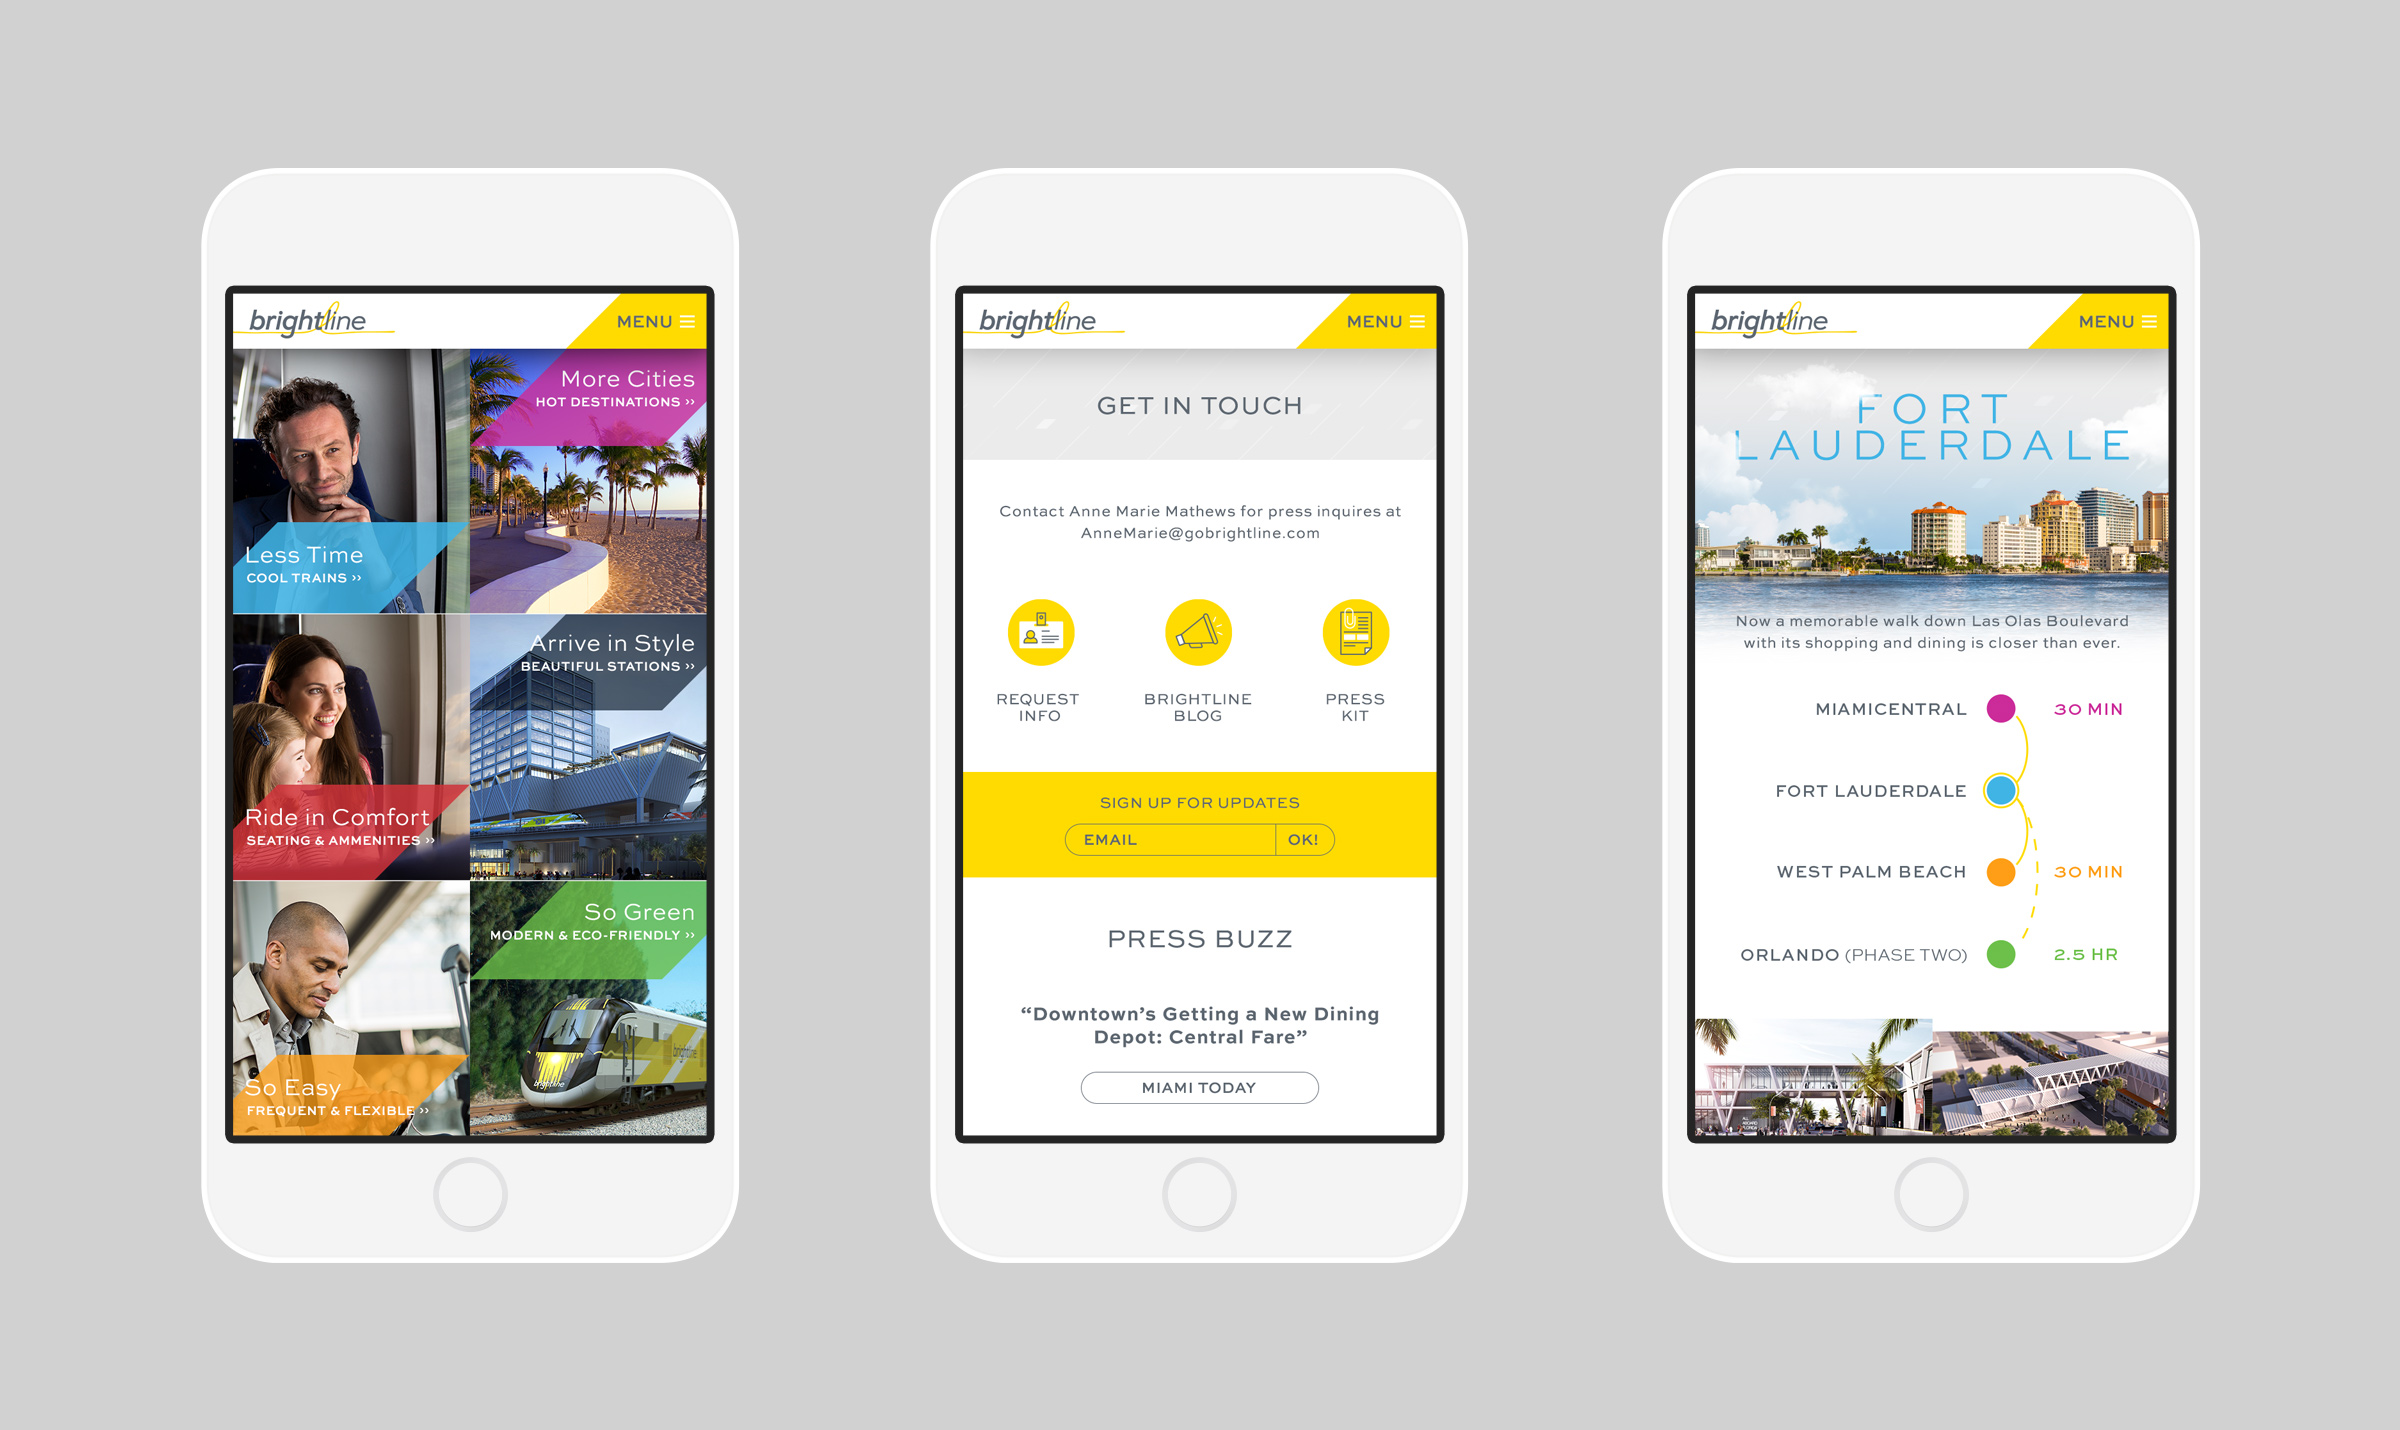 brightline-mobile